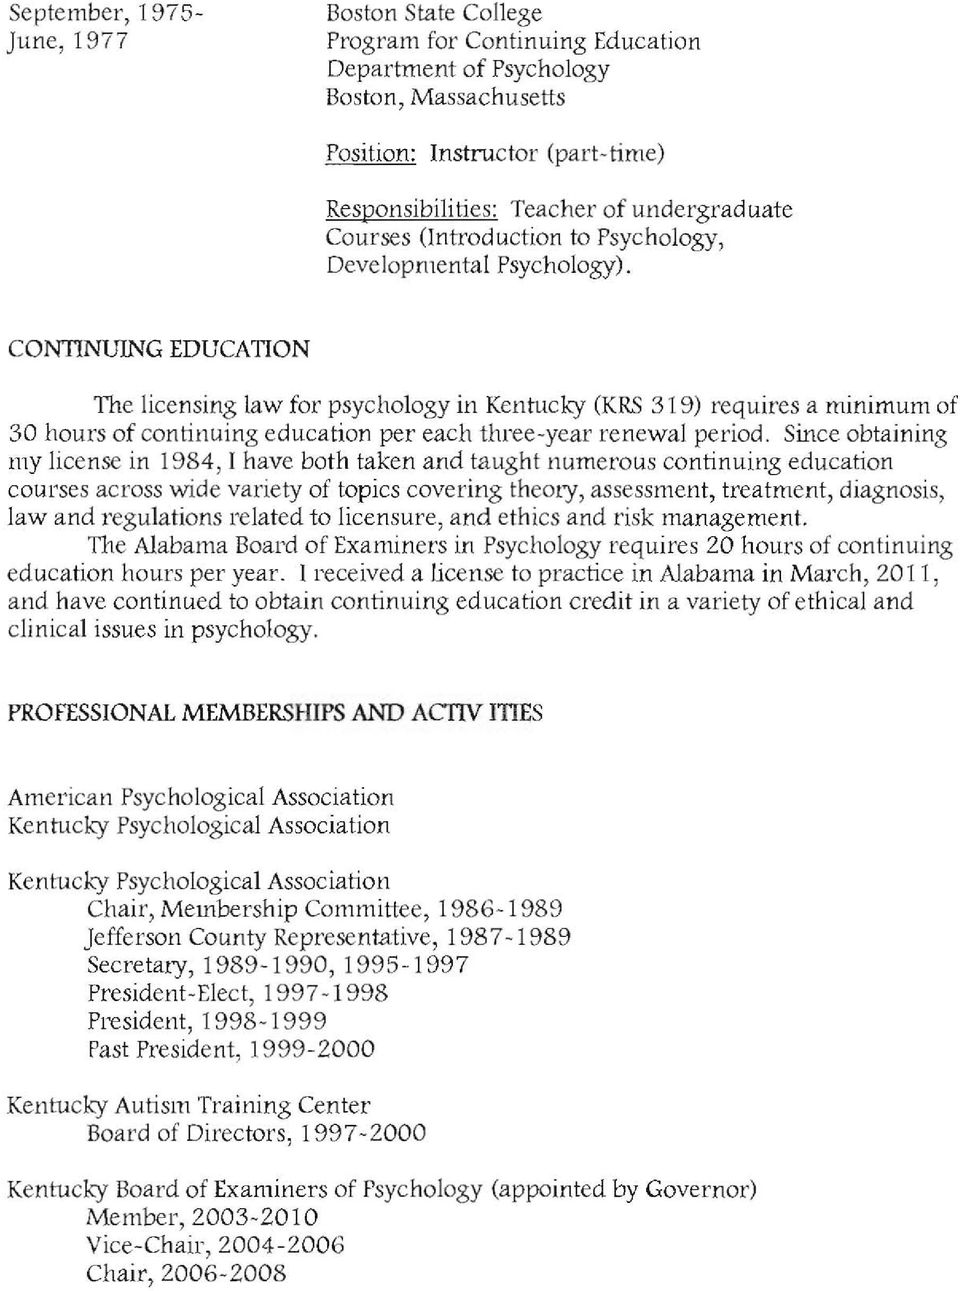 CONTINlmNG EDUCATION The licensing law for psychology in Kentucky (KRS 319) requires a minimum of 30 hours of continuing education per each three-year renewal period.